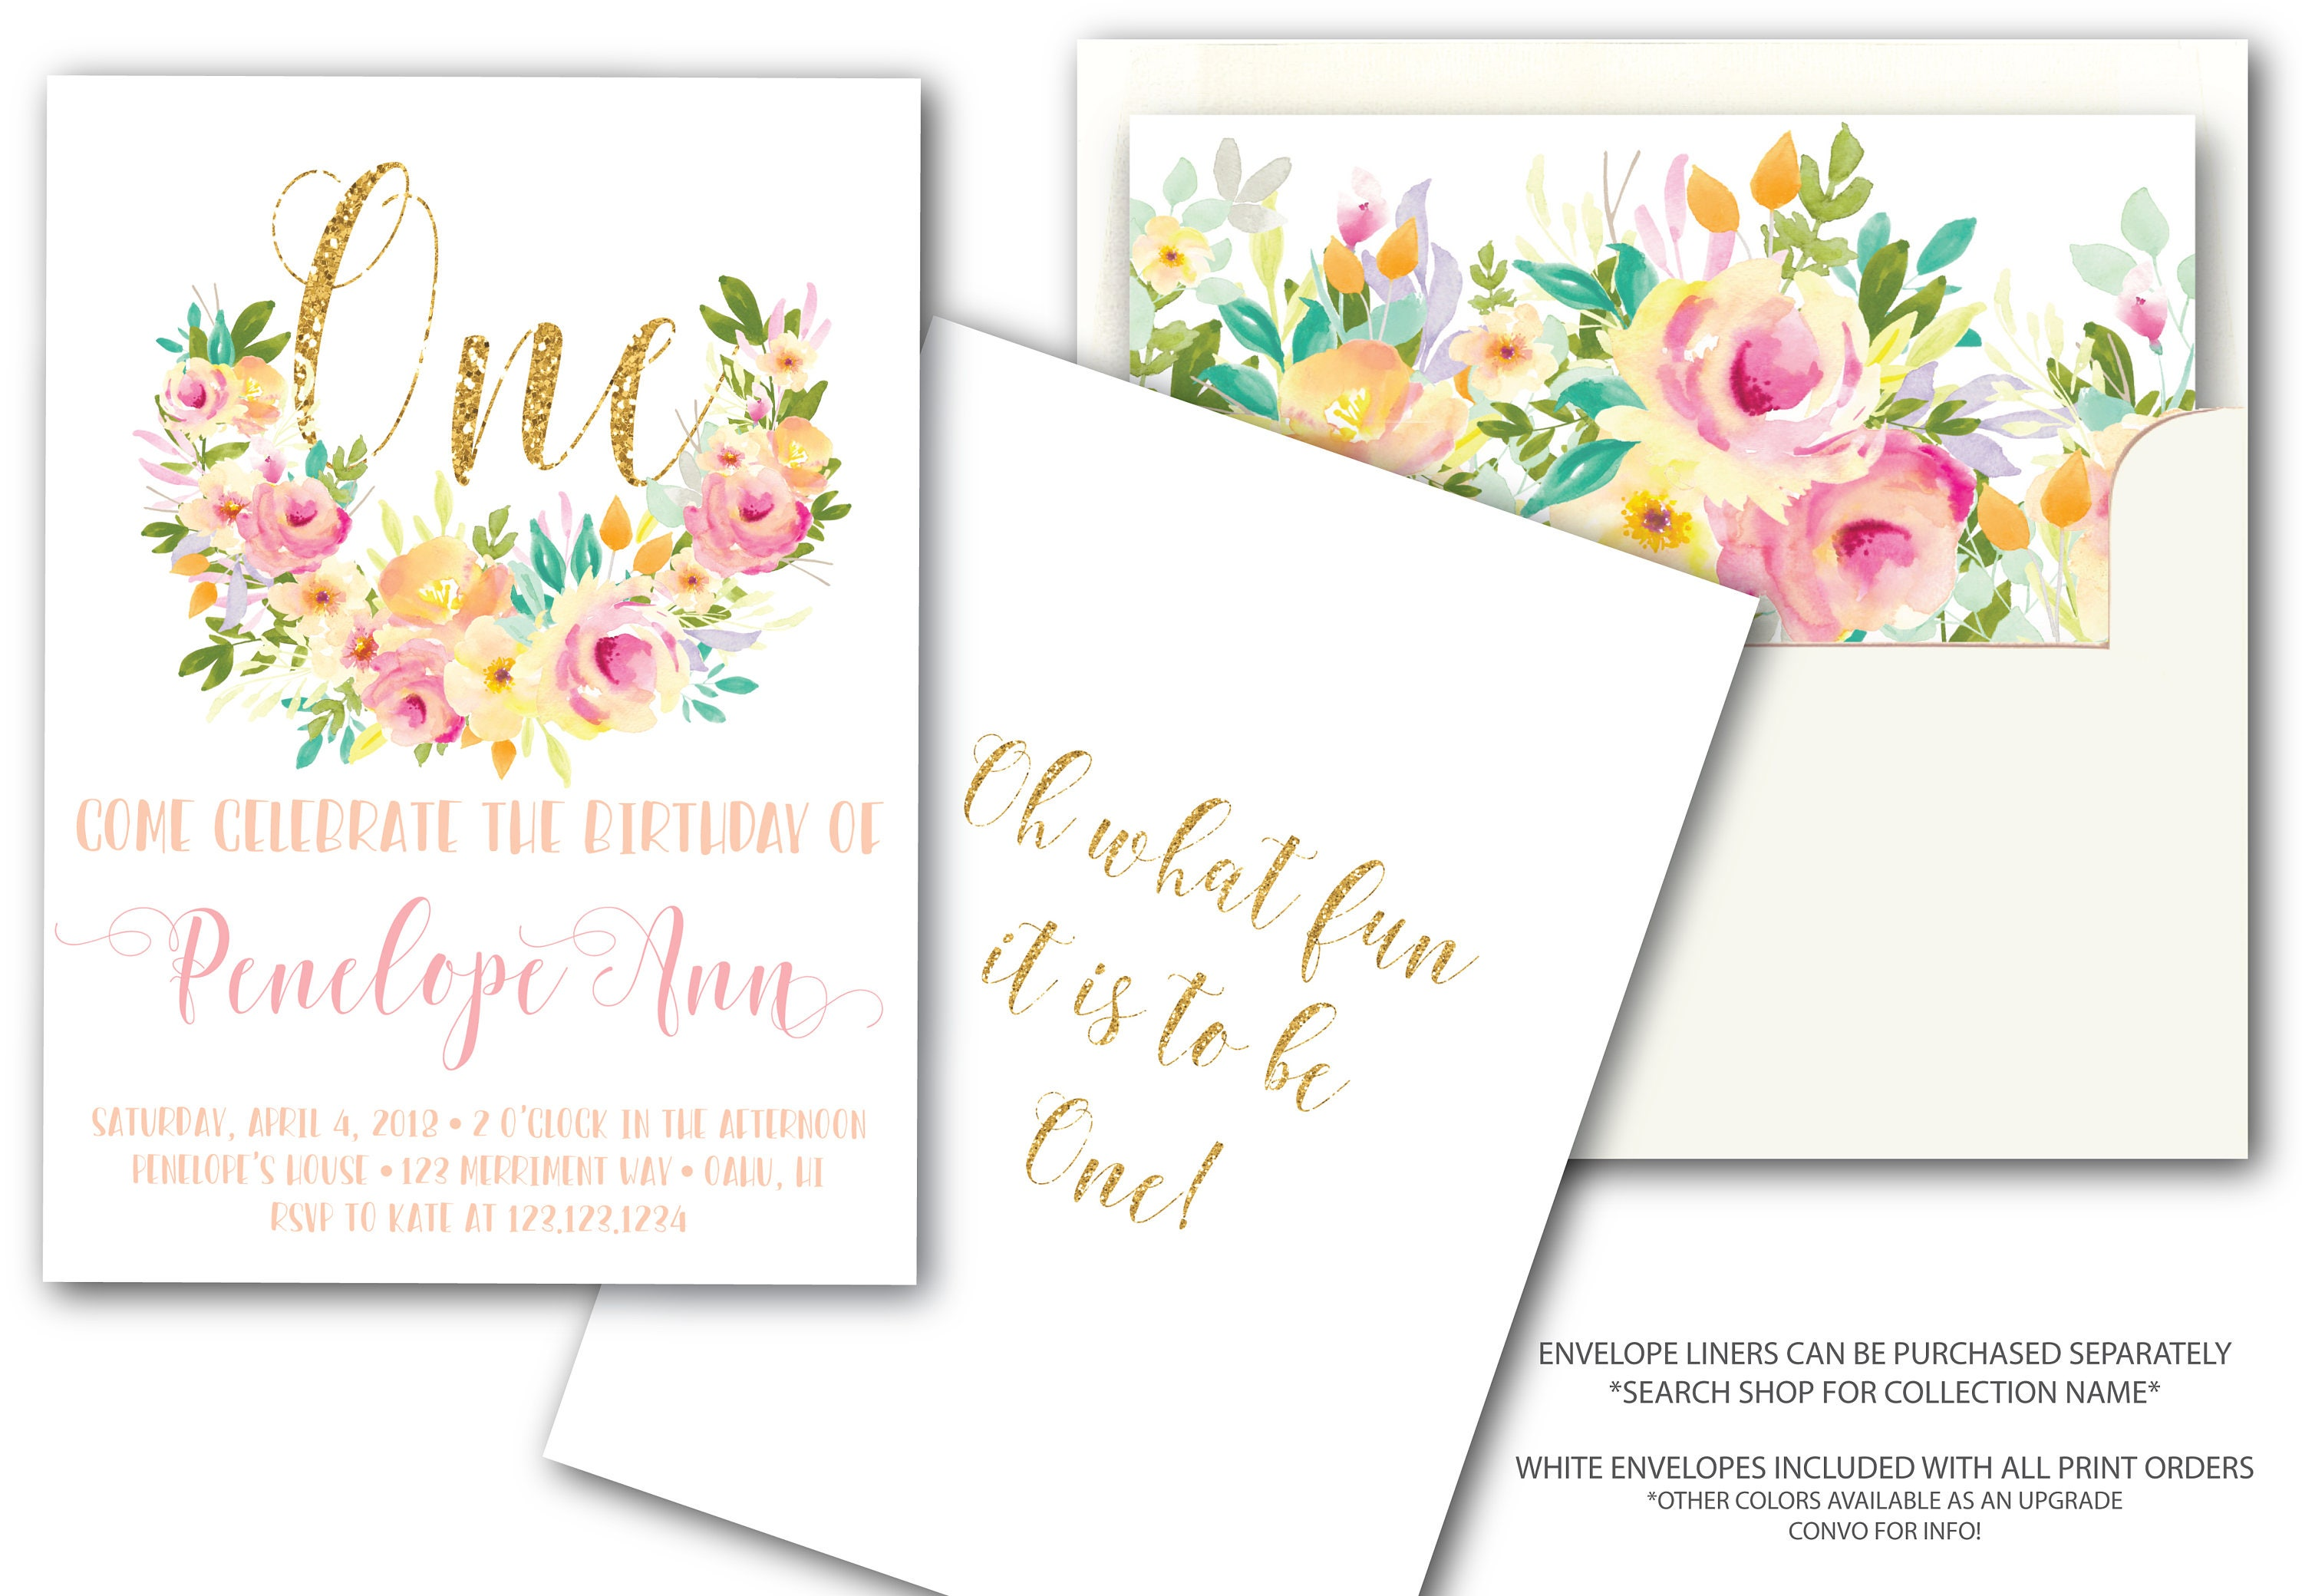 Pink And Gold First Birthday Invitation Glitter Mint Peach One Pretty Watercolor Floral Invite Oh What Fun To Be OAHU COLLECTION